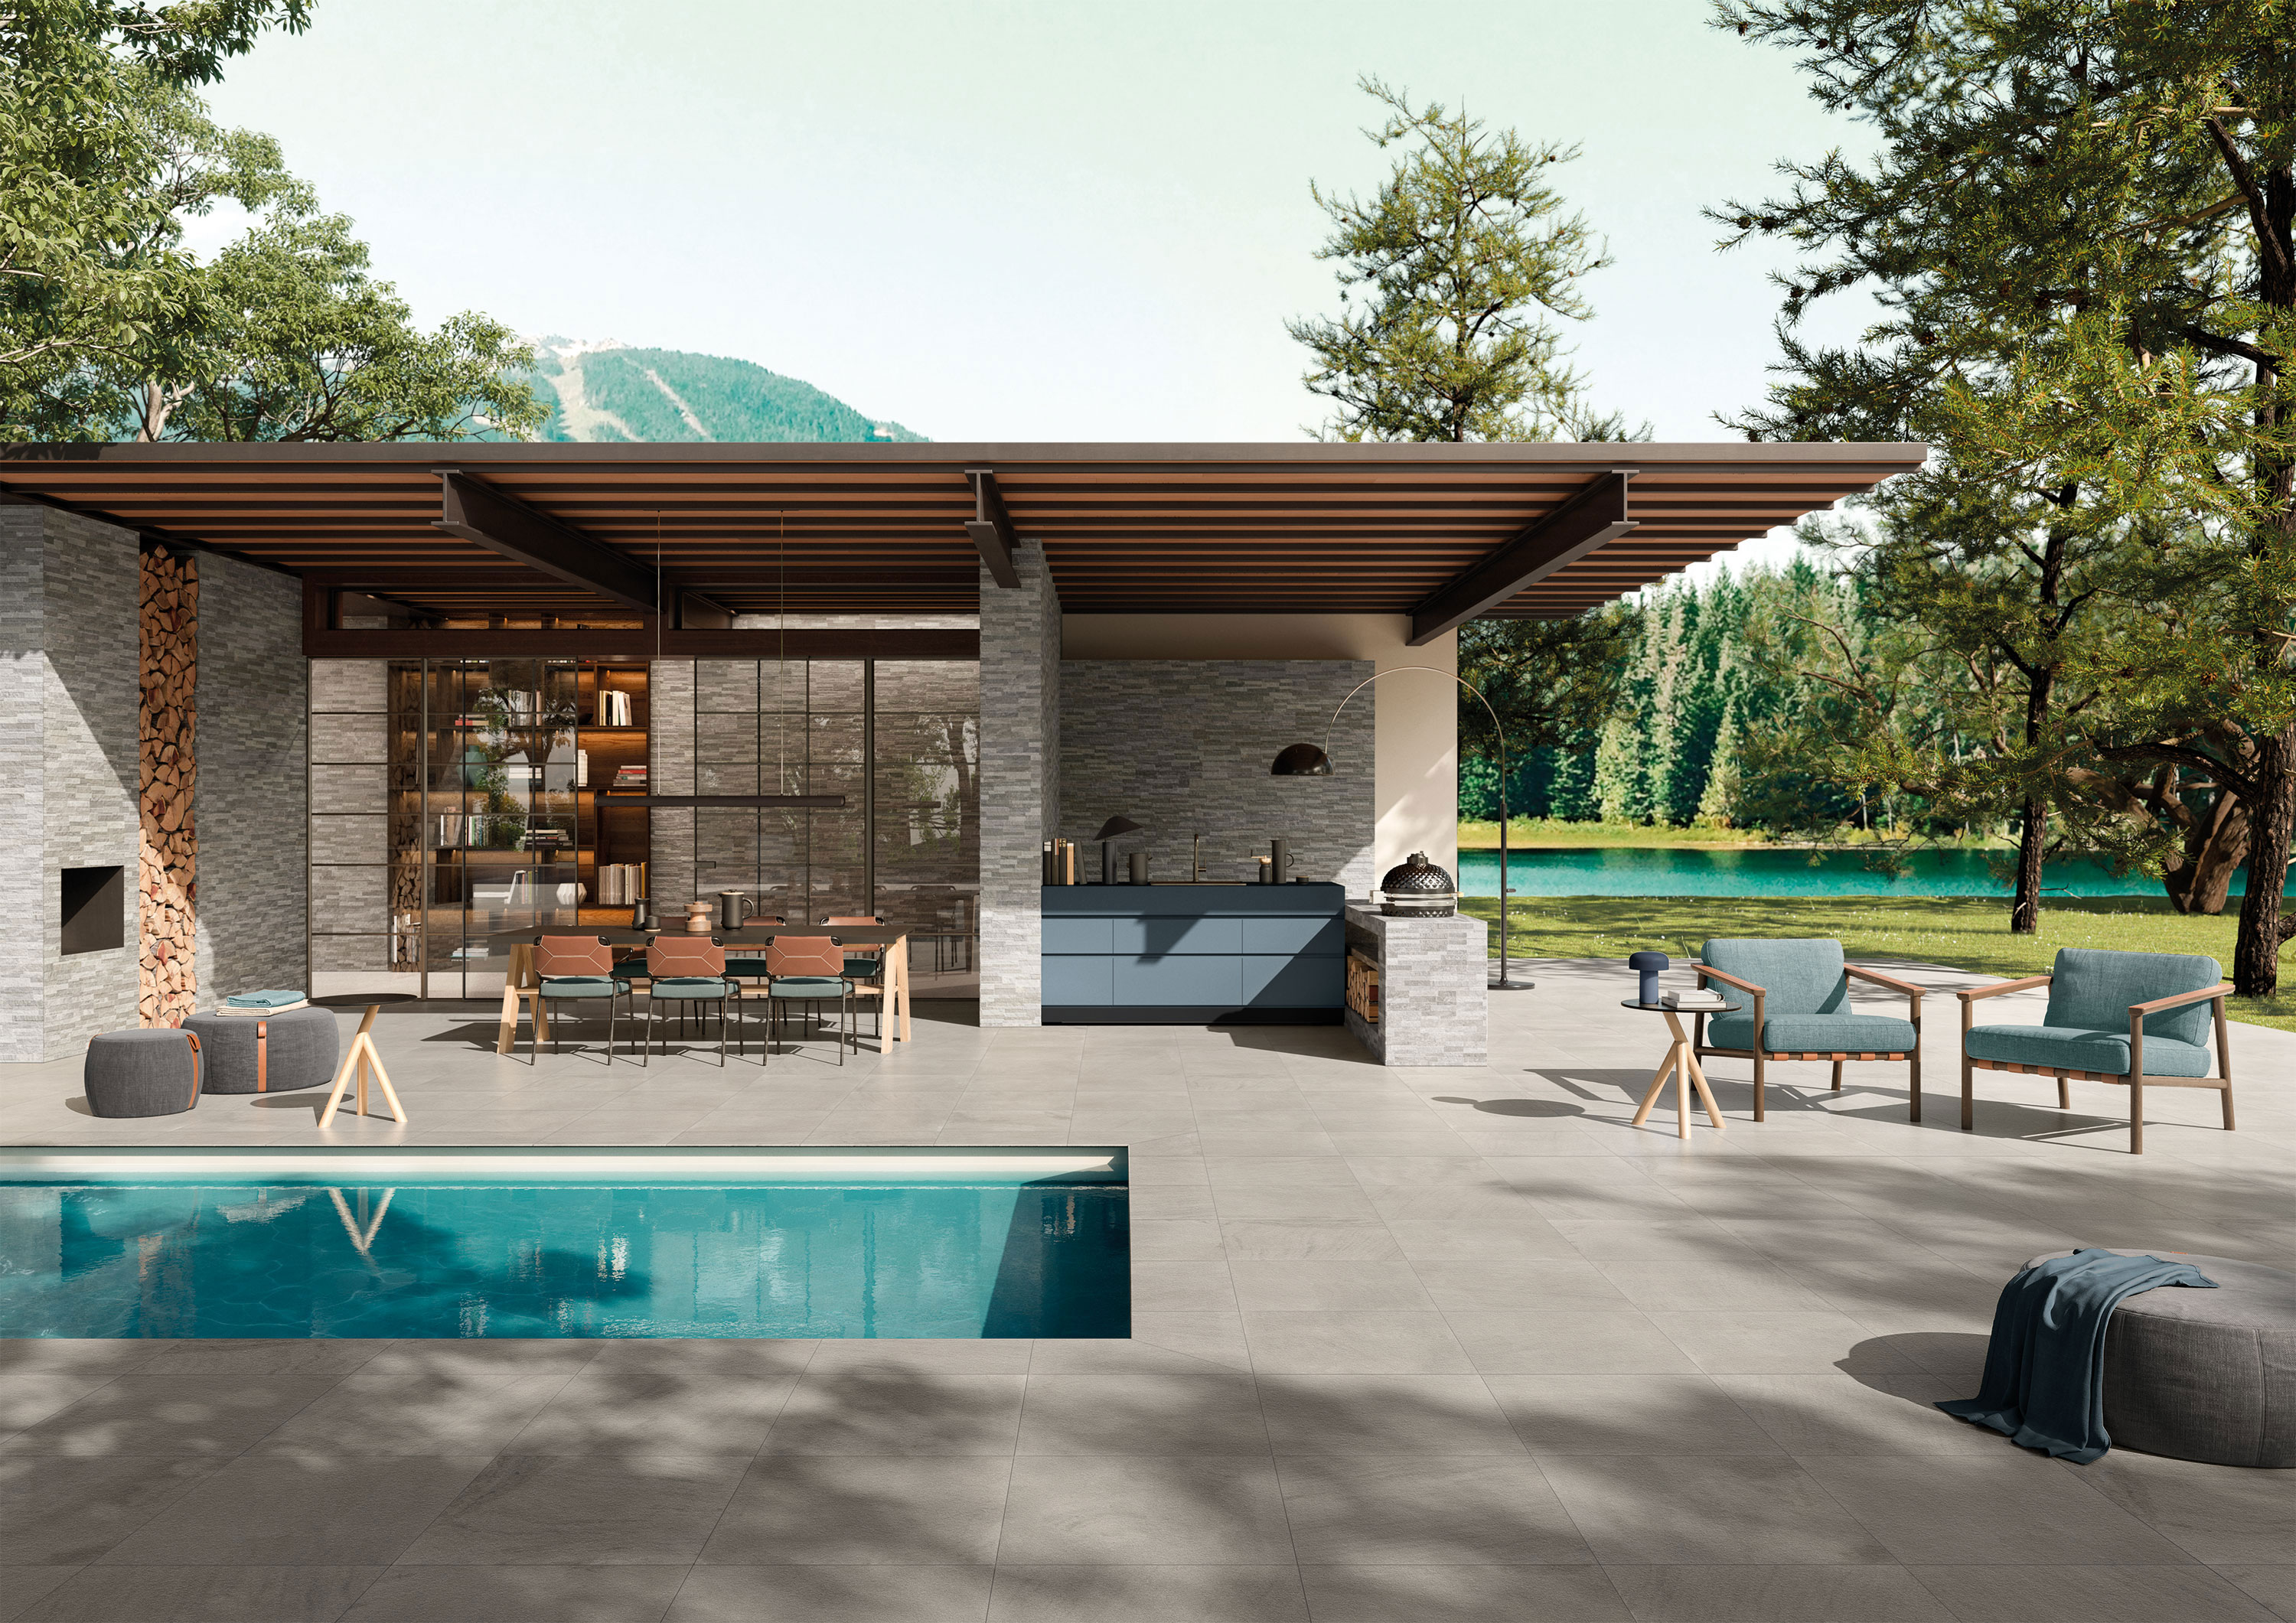 Outdoor kitchen with concrete-look tile flooring and pool surround